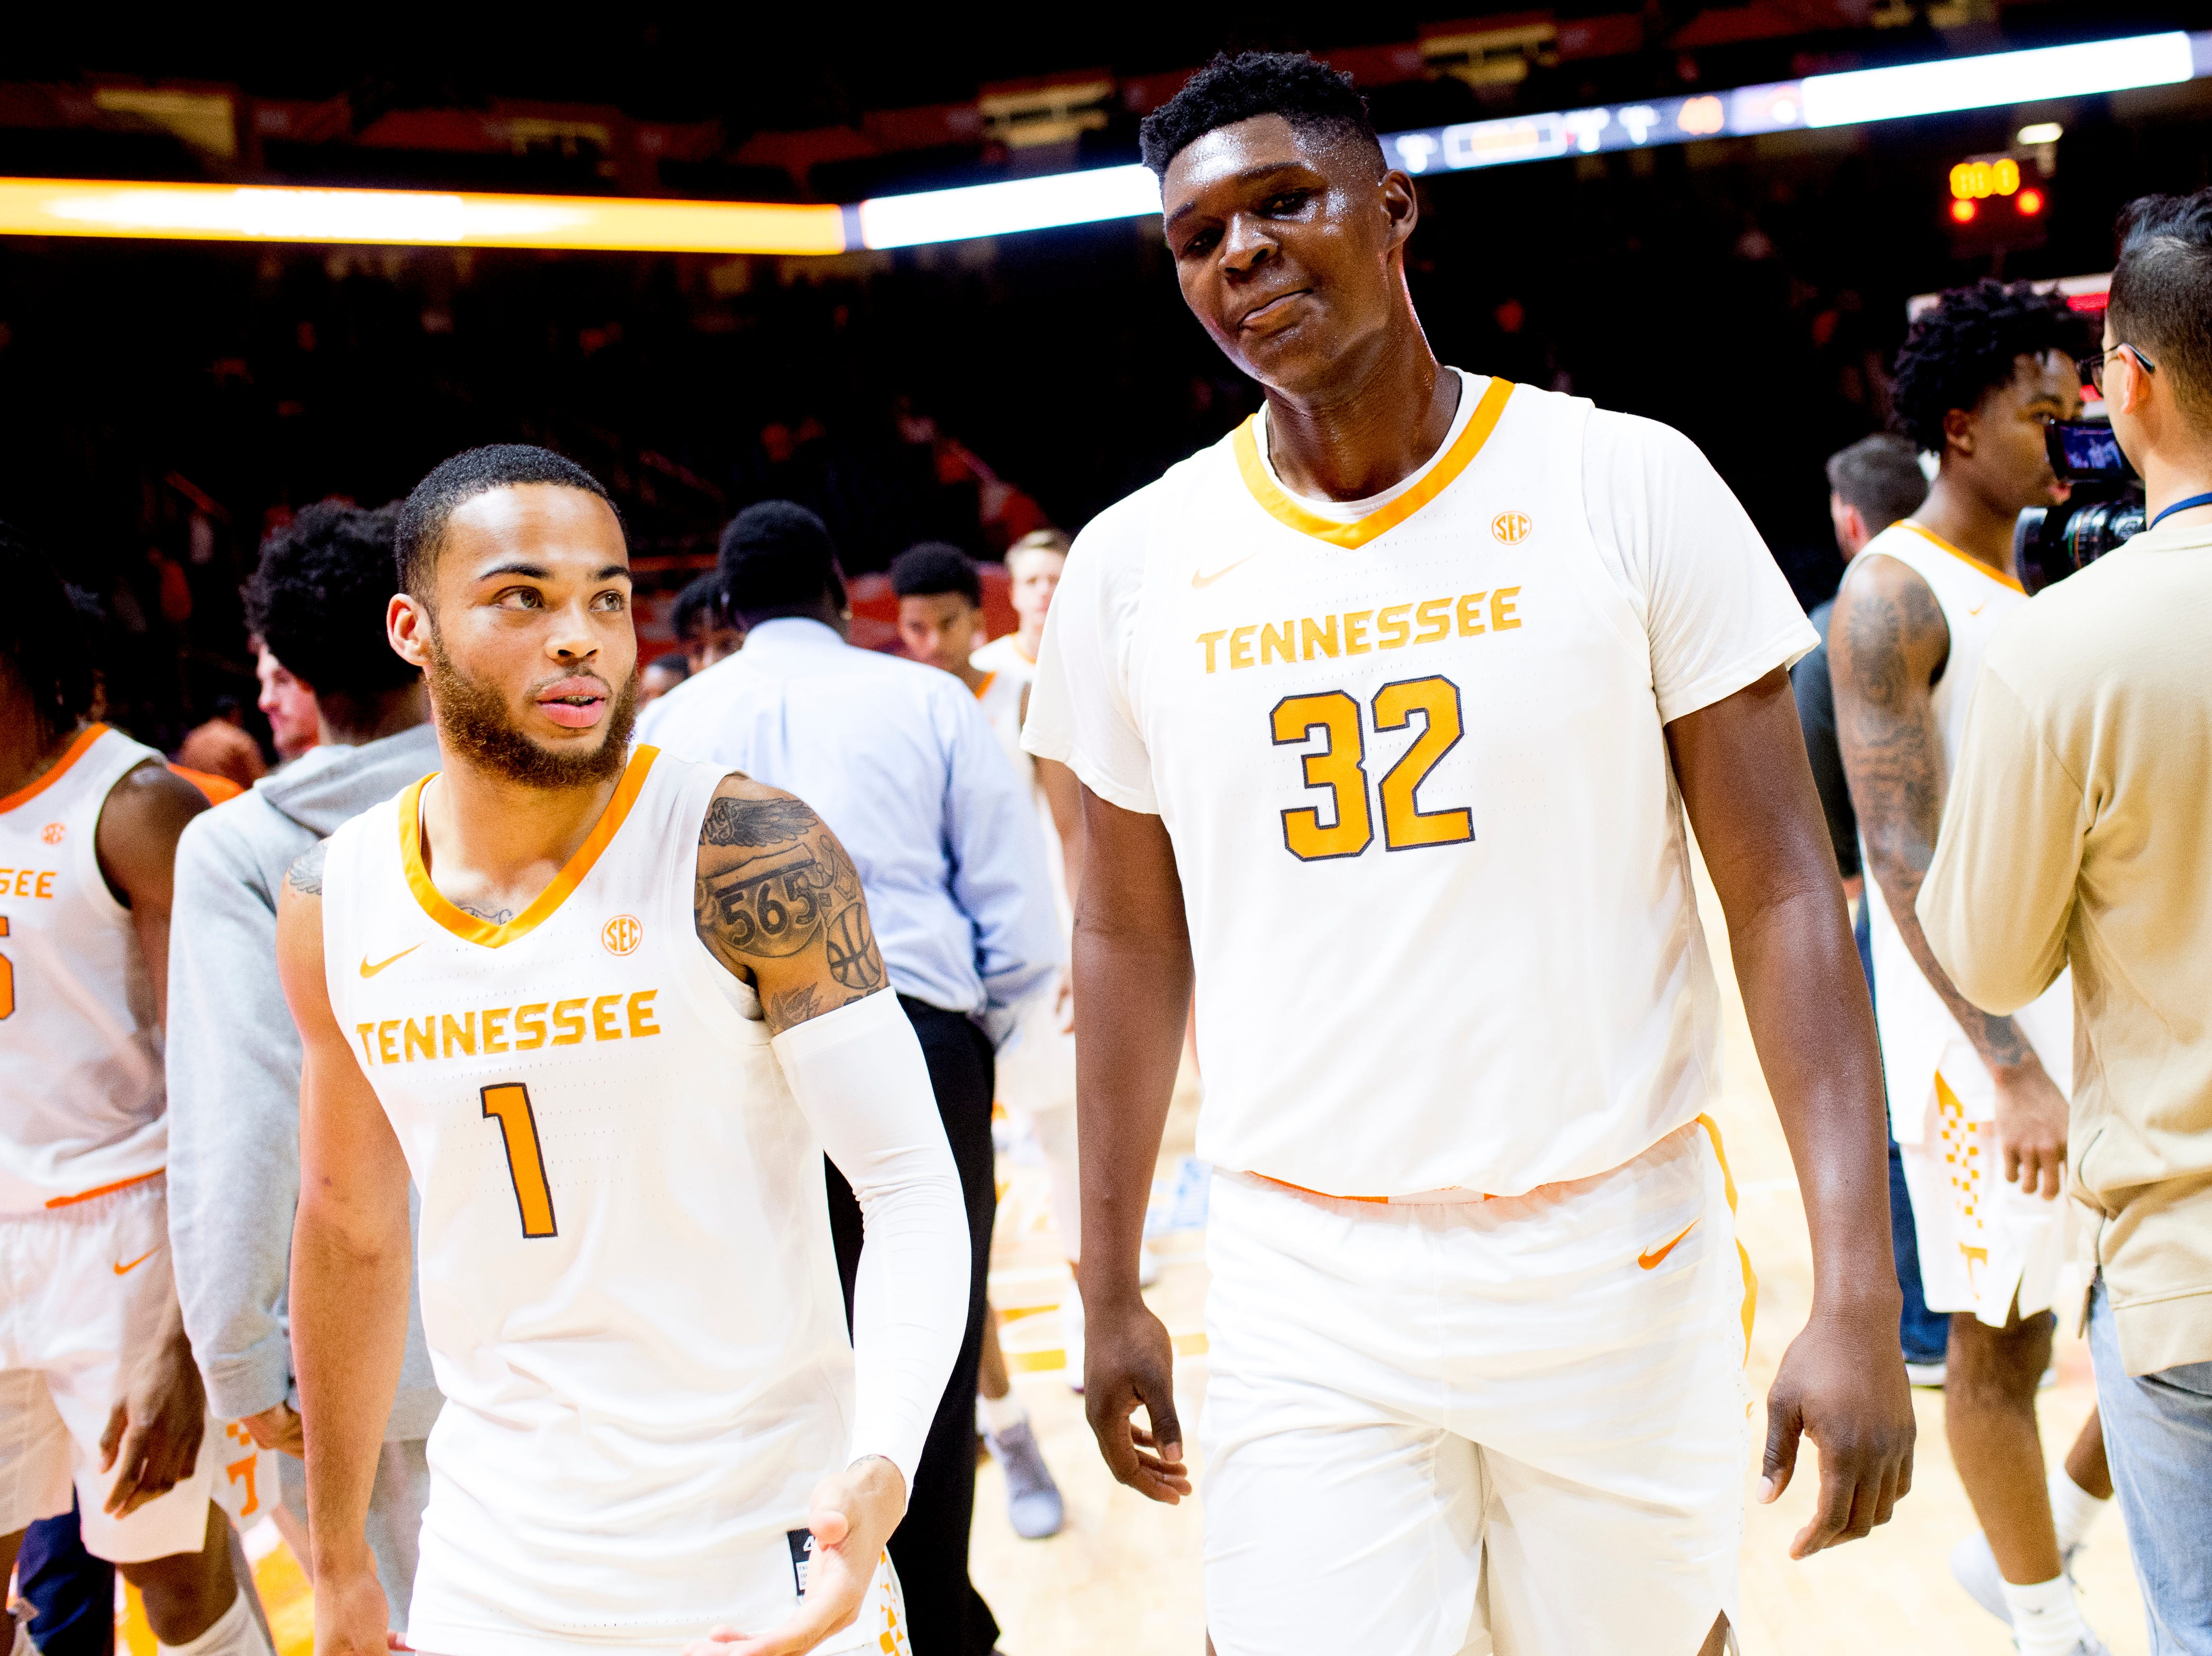 Tennessee guard Lamonte Turner (1) and Tennessee forward D.J. Burns (32) walk off the court after their 87-48 win over Tusculum at Thompson-Boling Arena in Knoxville, Tennessee on Wednesday, October 31, 2018.